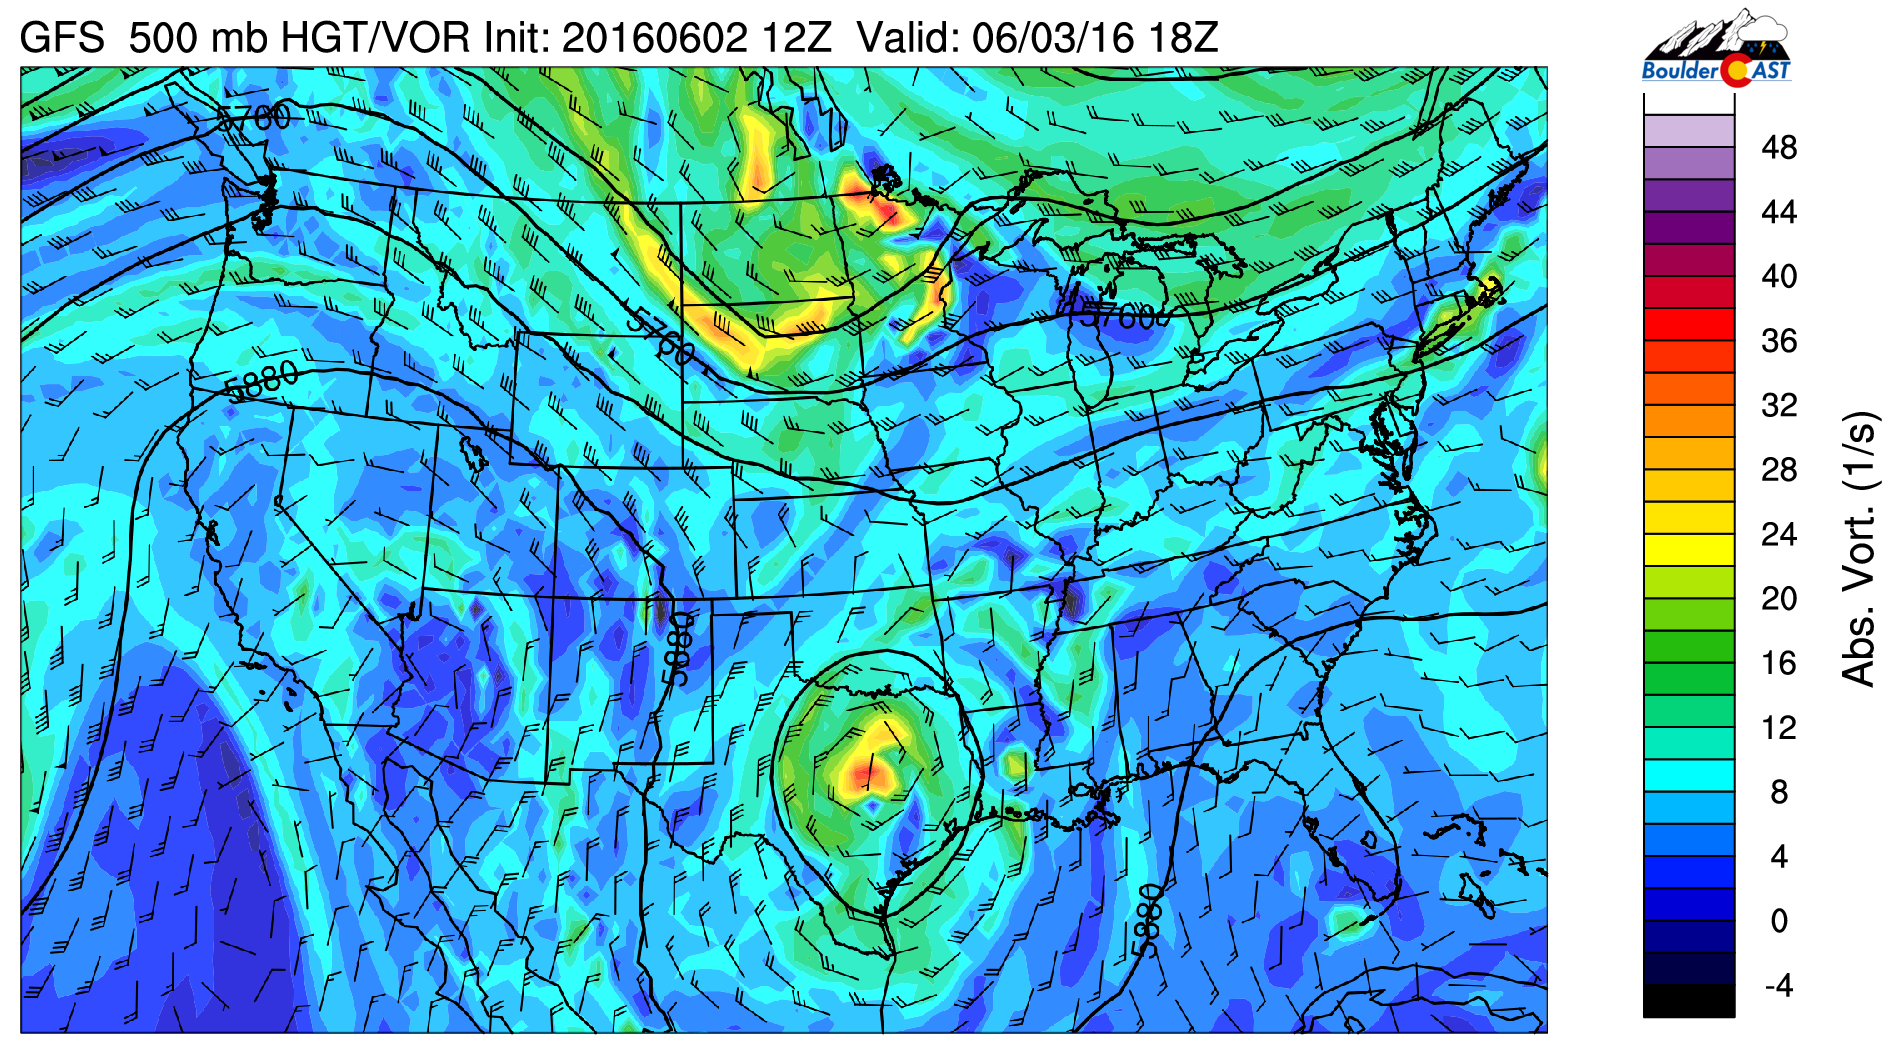 GFS 500 mb vorticity for today